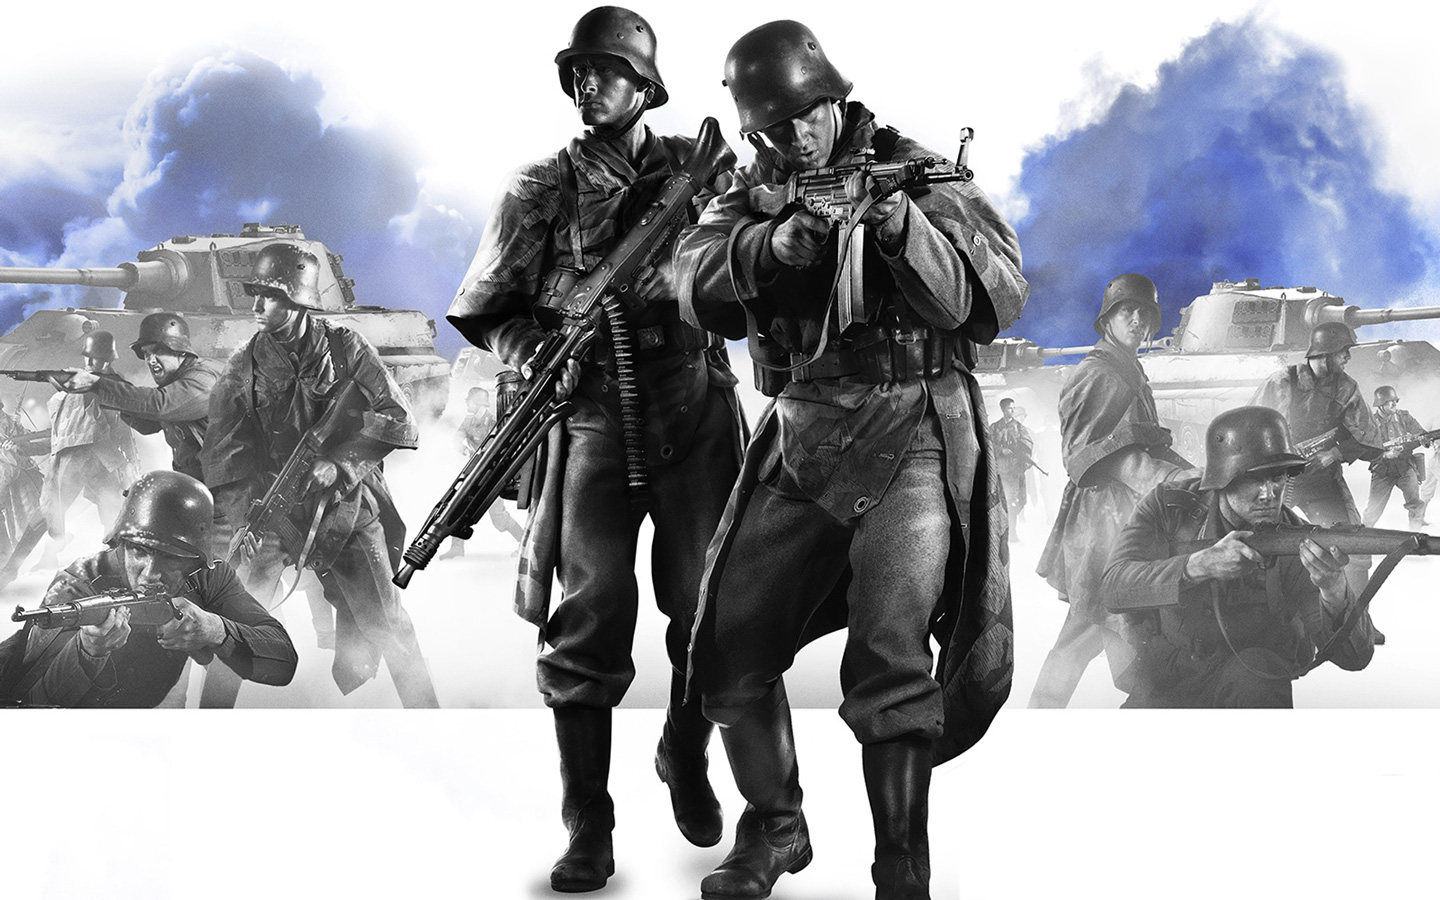 Free Company of Heroes 2 Wallpaper in 1440x900